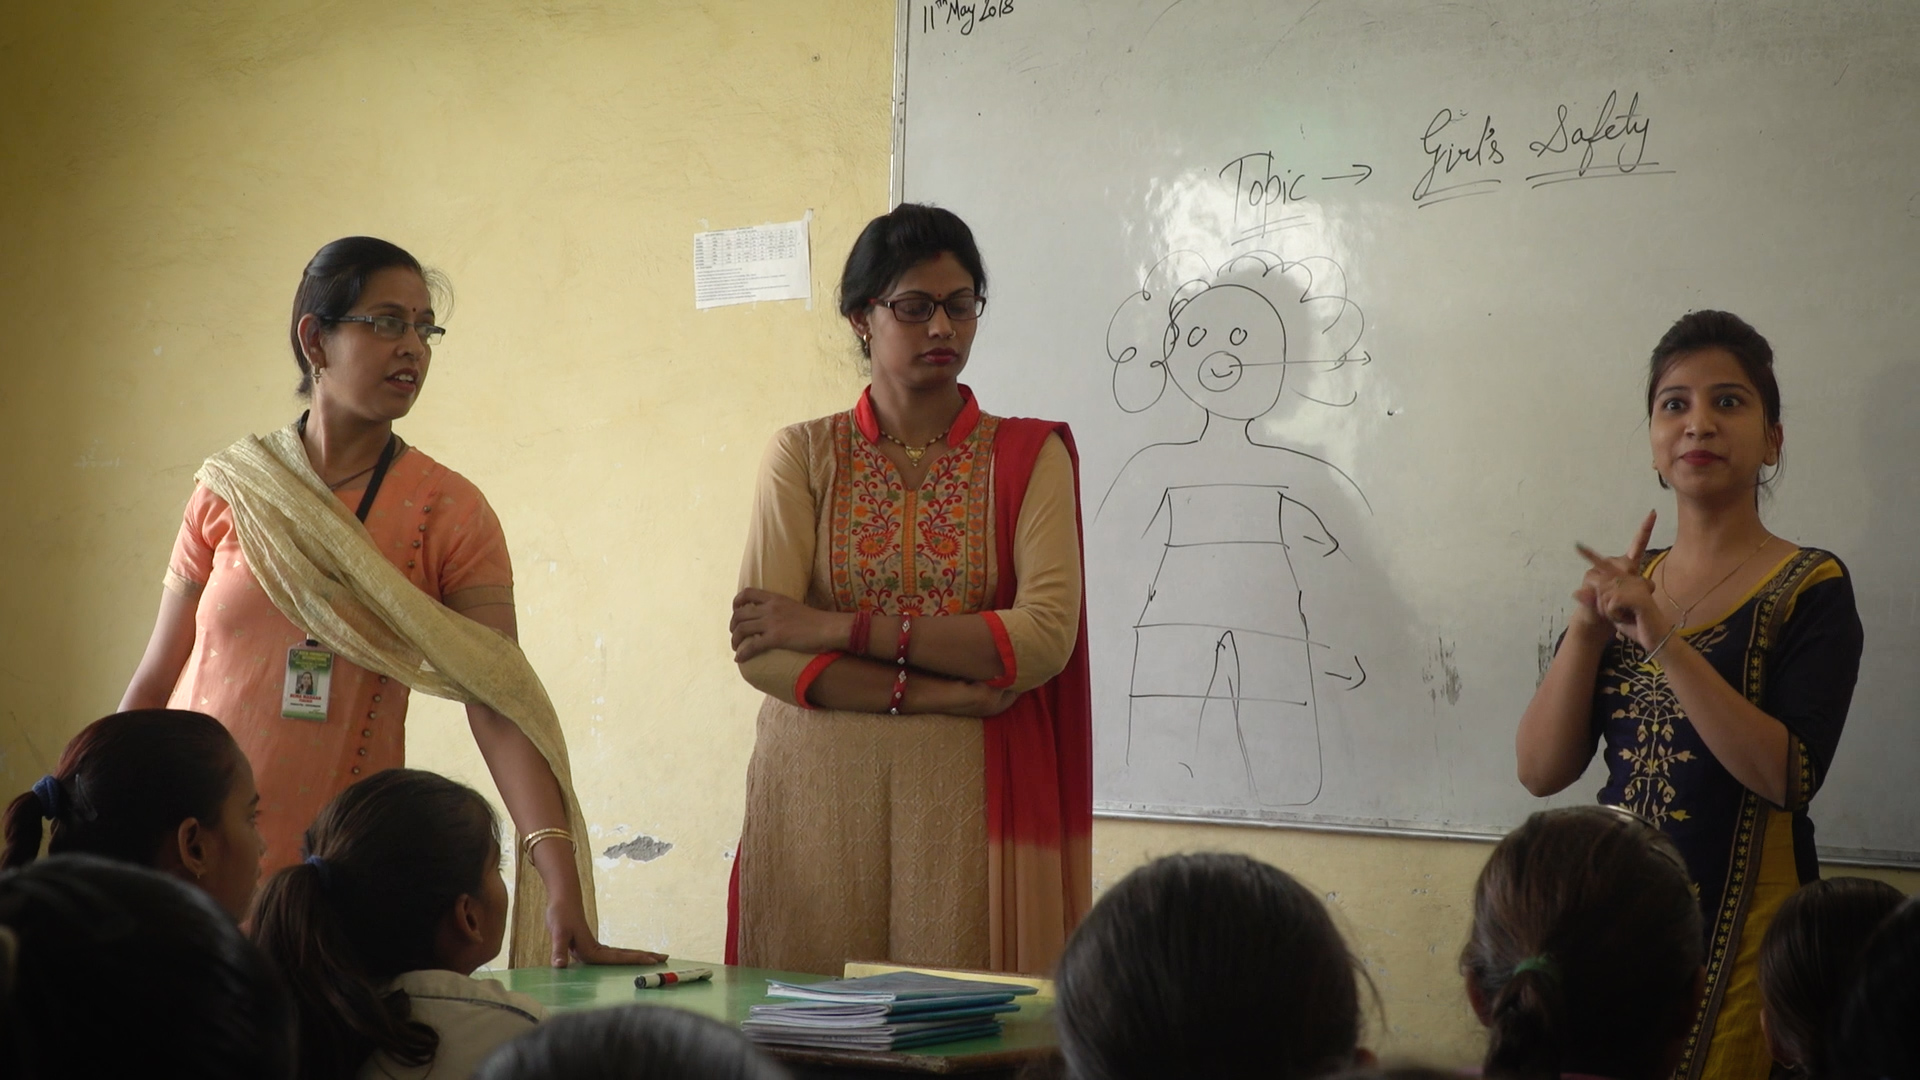 India rape crisis: A small town grapples with how to protect